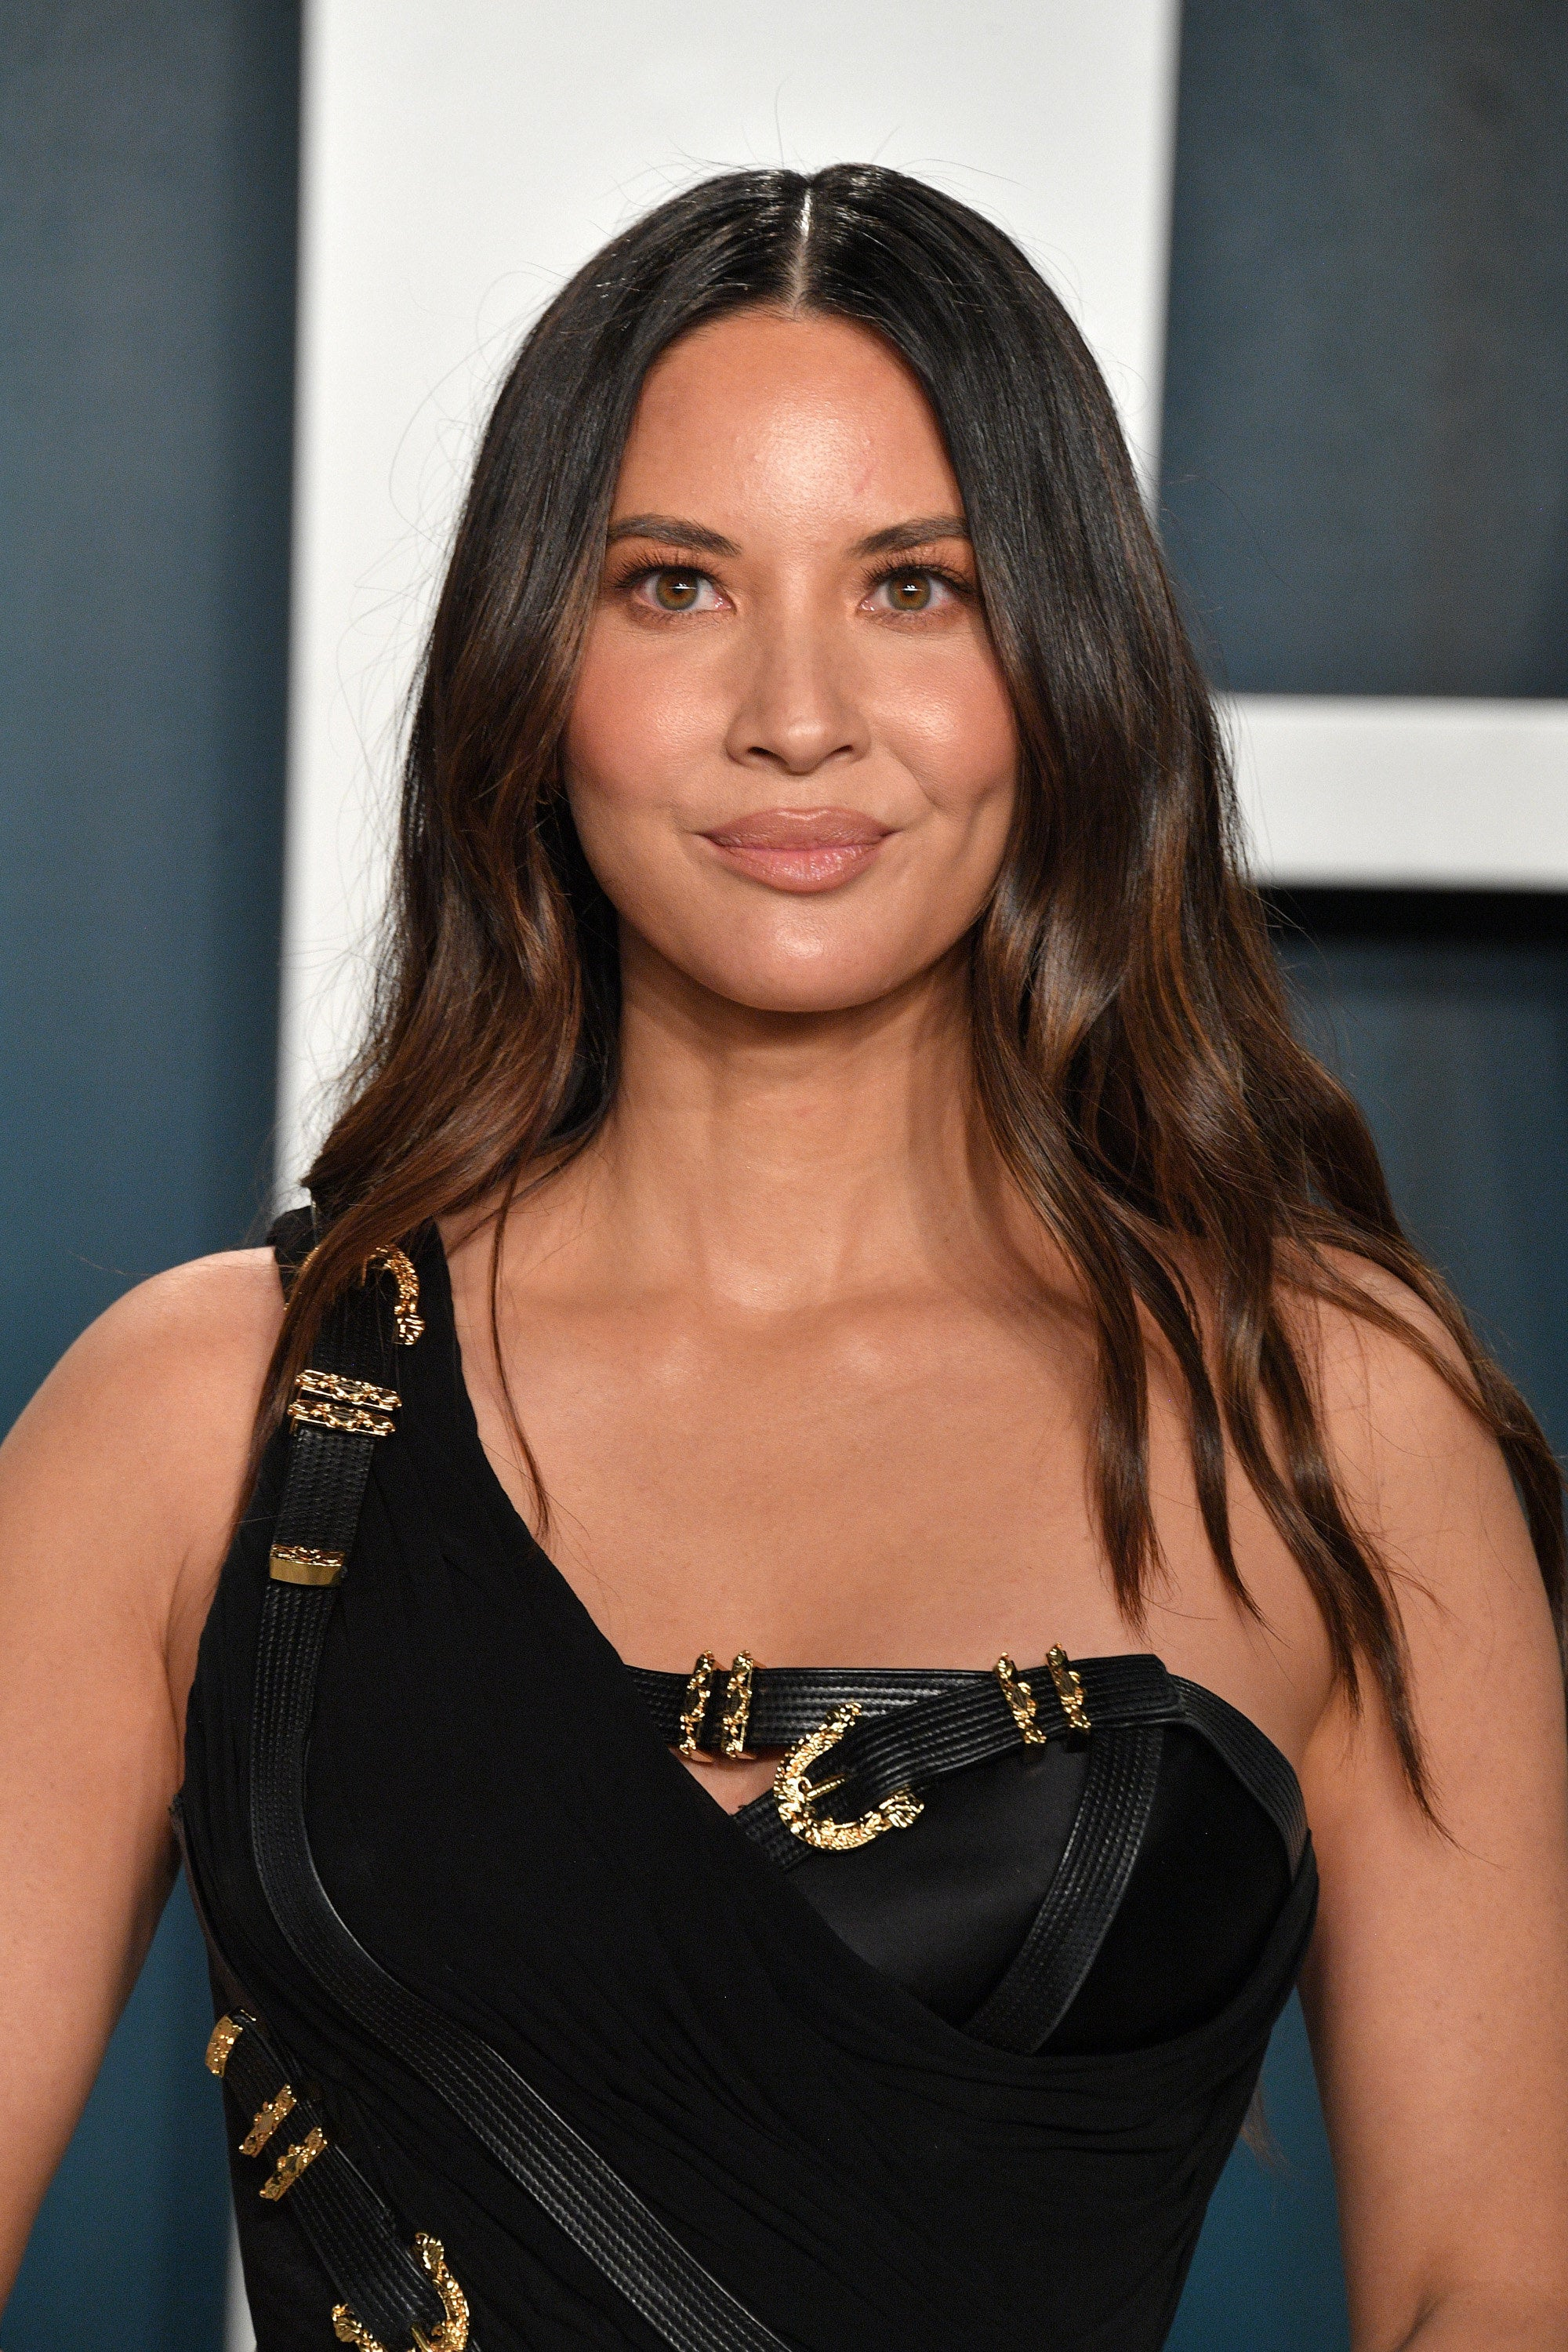 Olivia Munn smiling, wearing a single-shoulder, black dress embellished with gold buckles